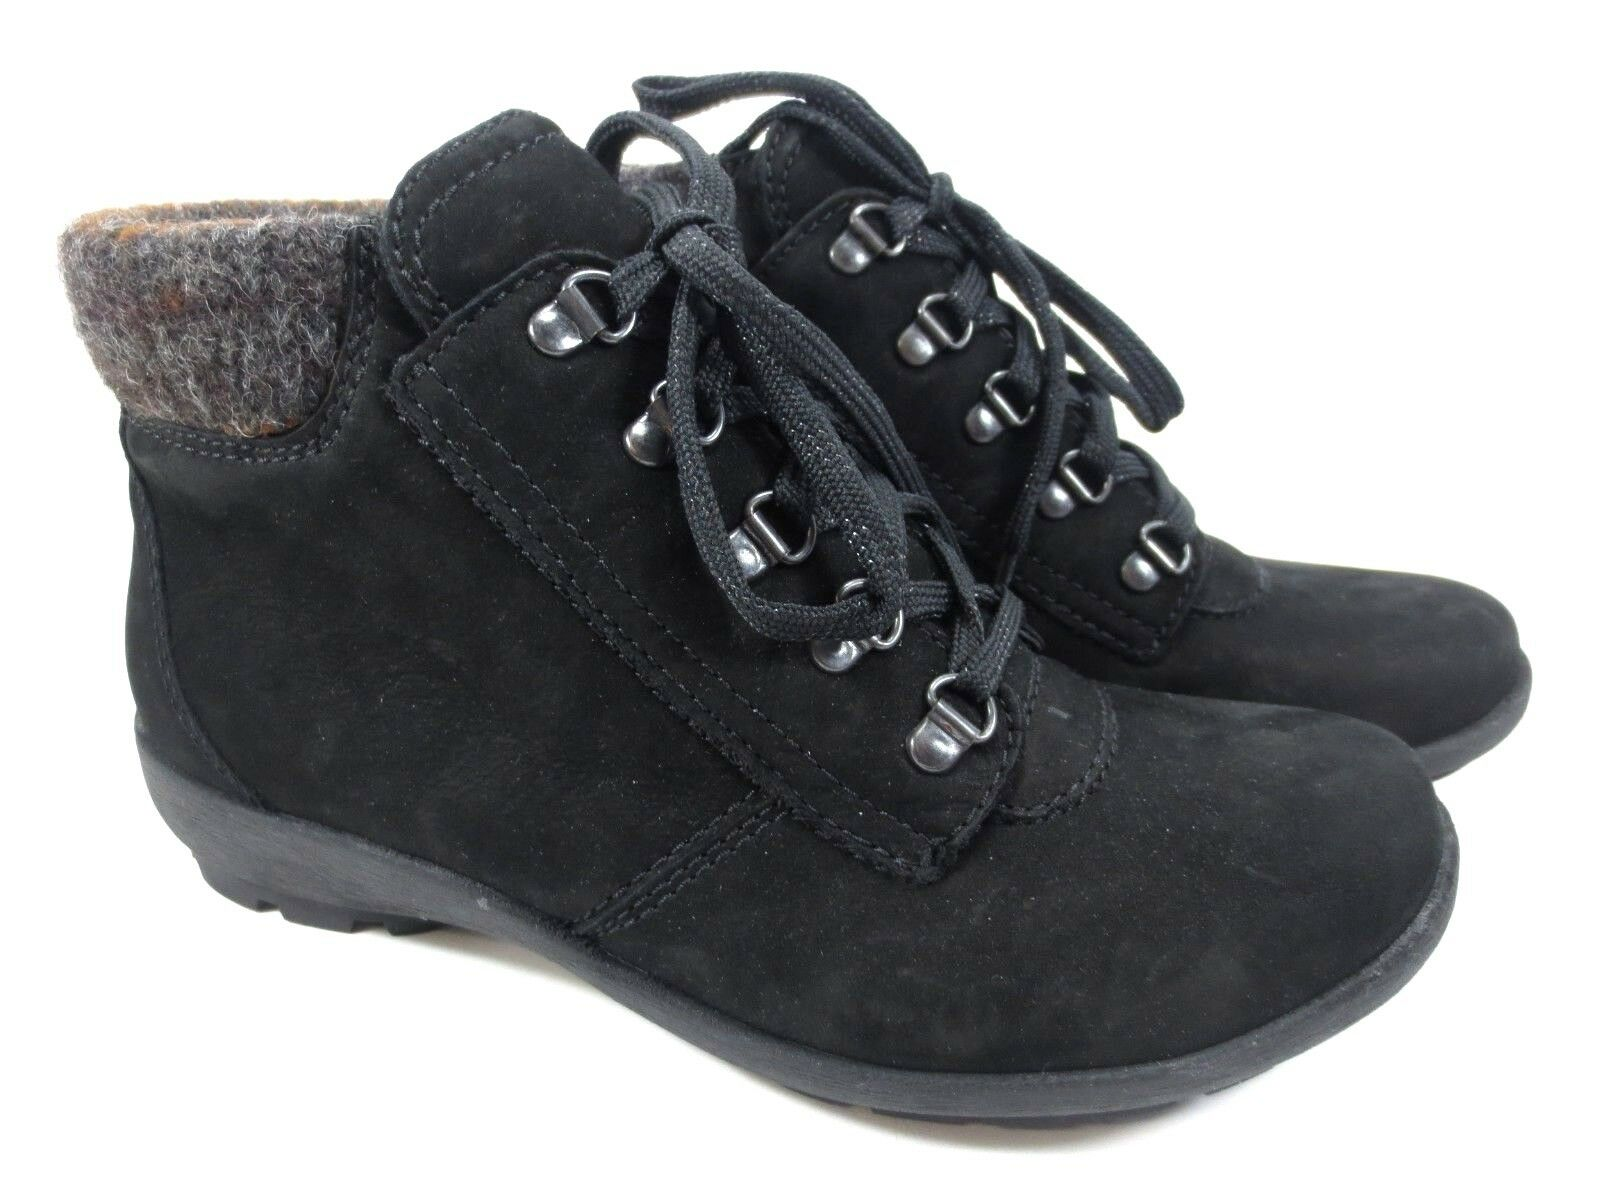 Ranger Holma Leather shoes Ankle Boots Size 37,5 UK 4,5 H 239